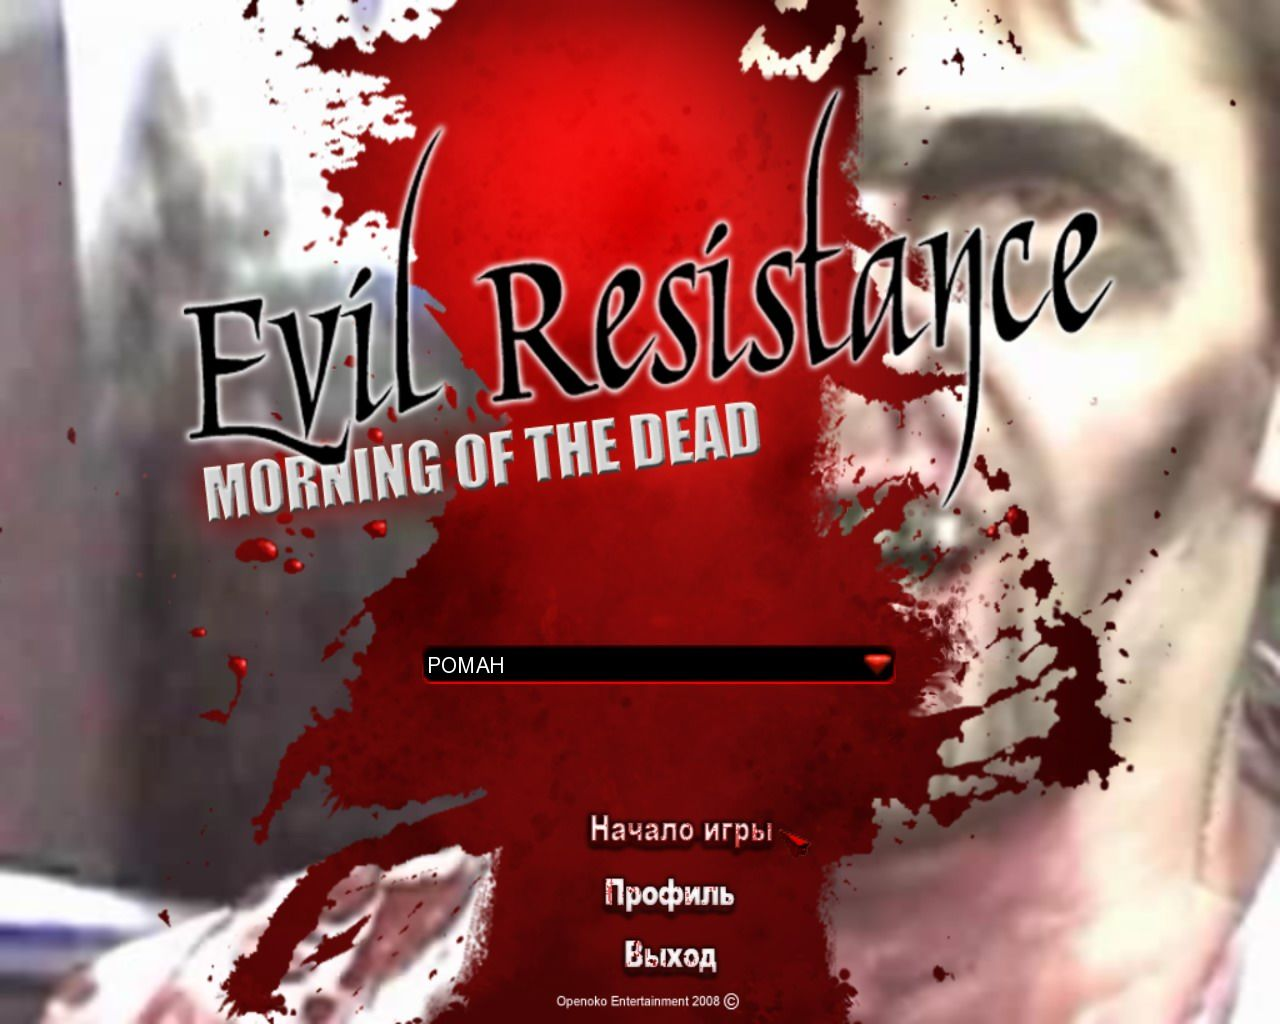 Evil Resistance: Morning of the Dead